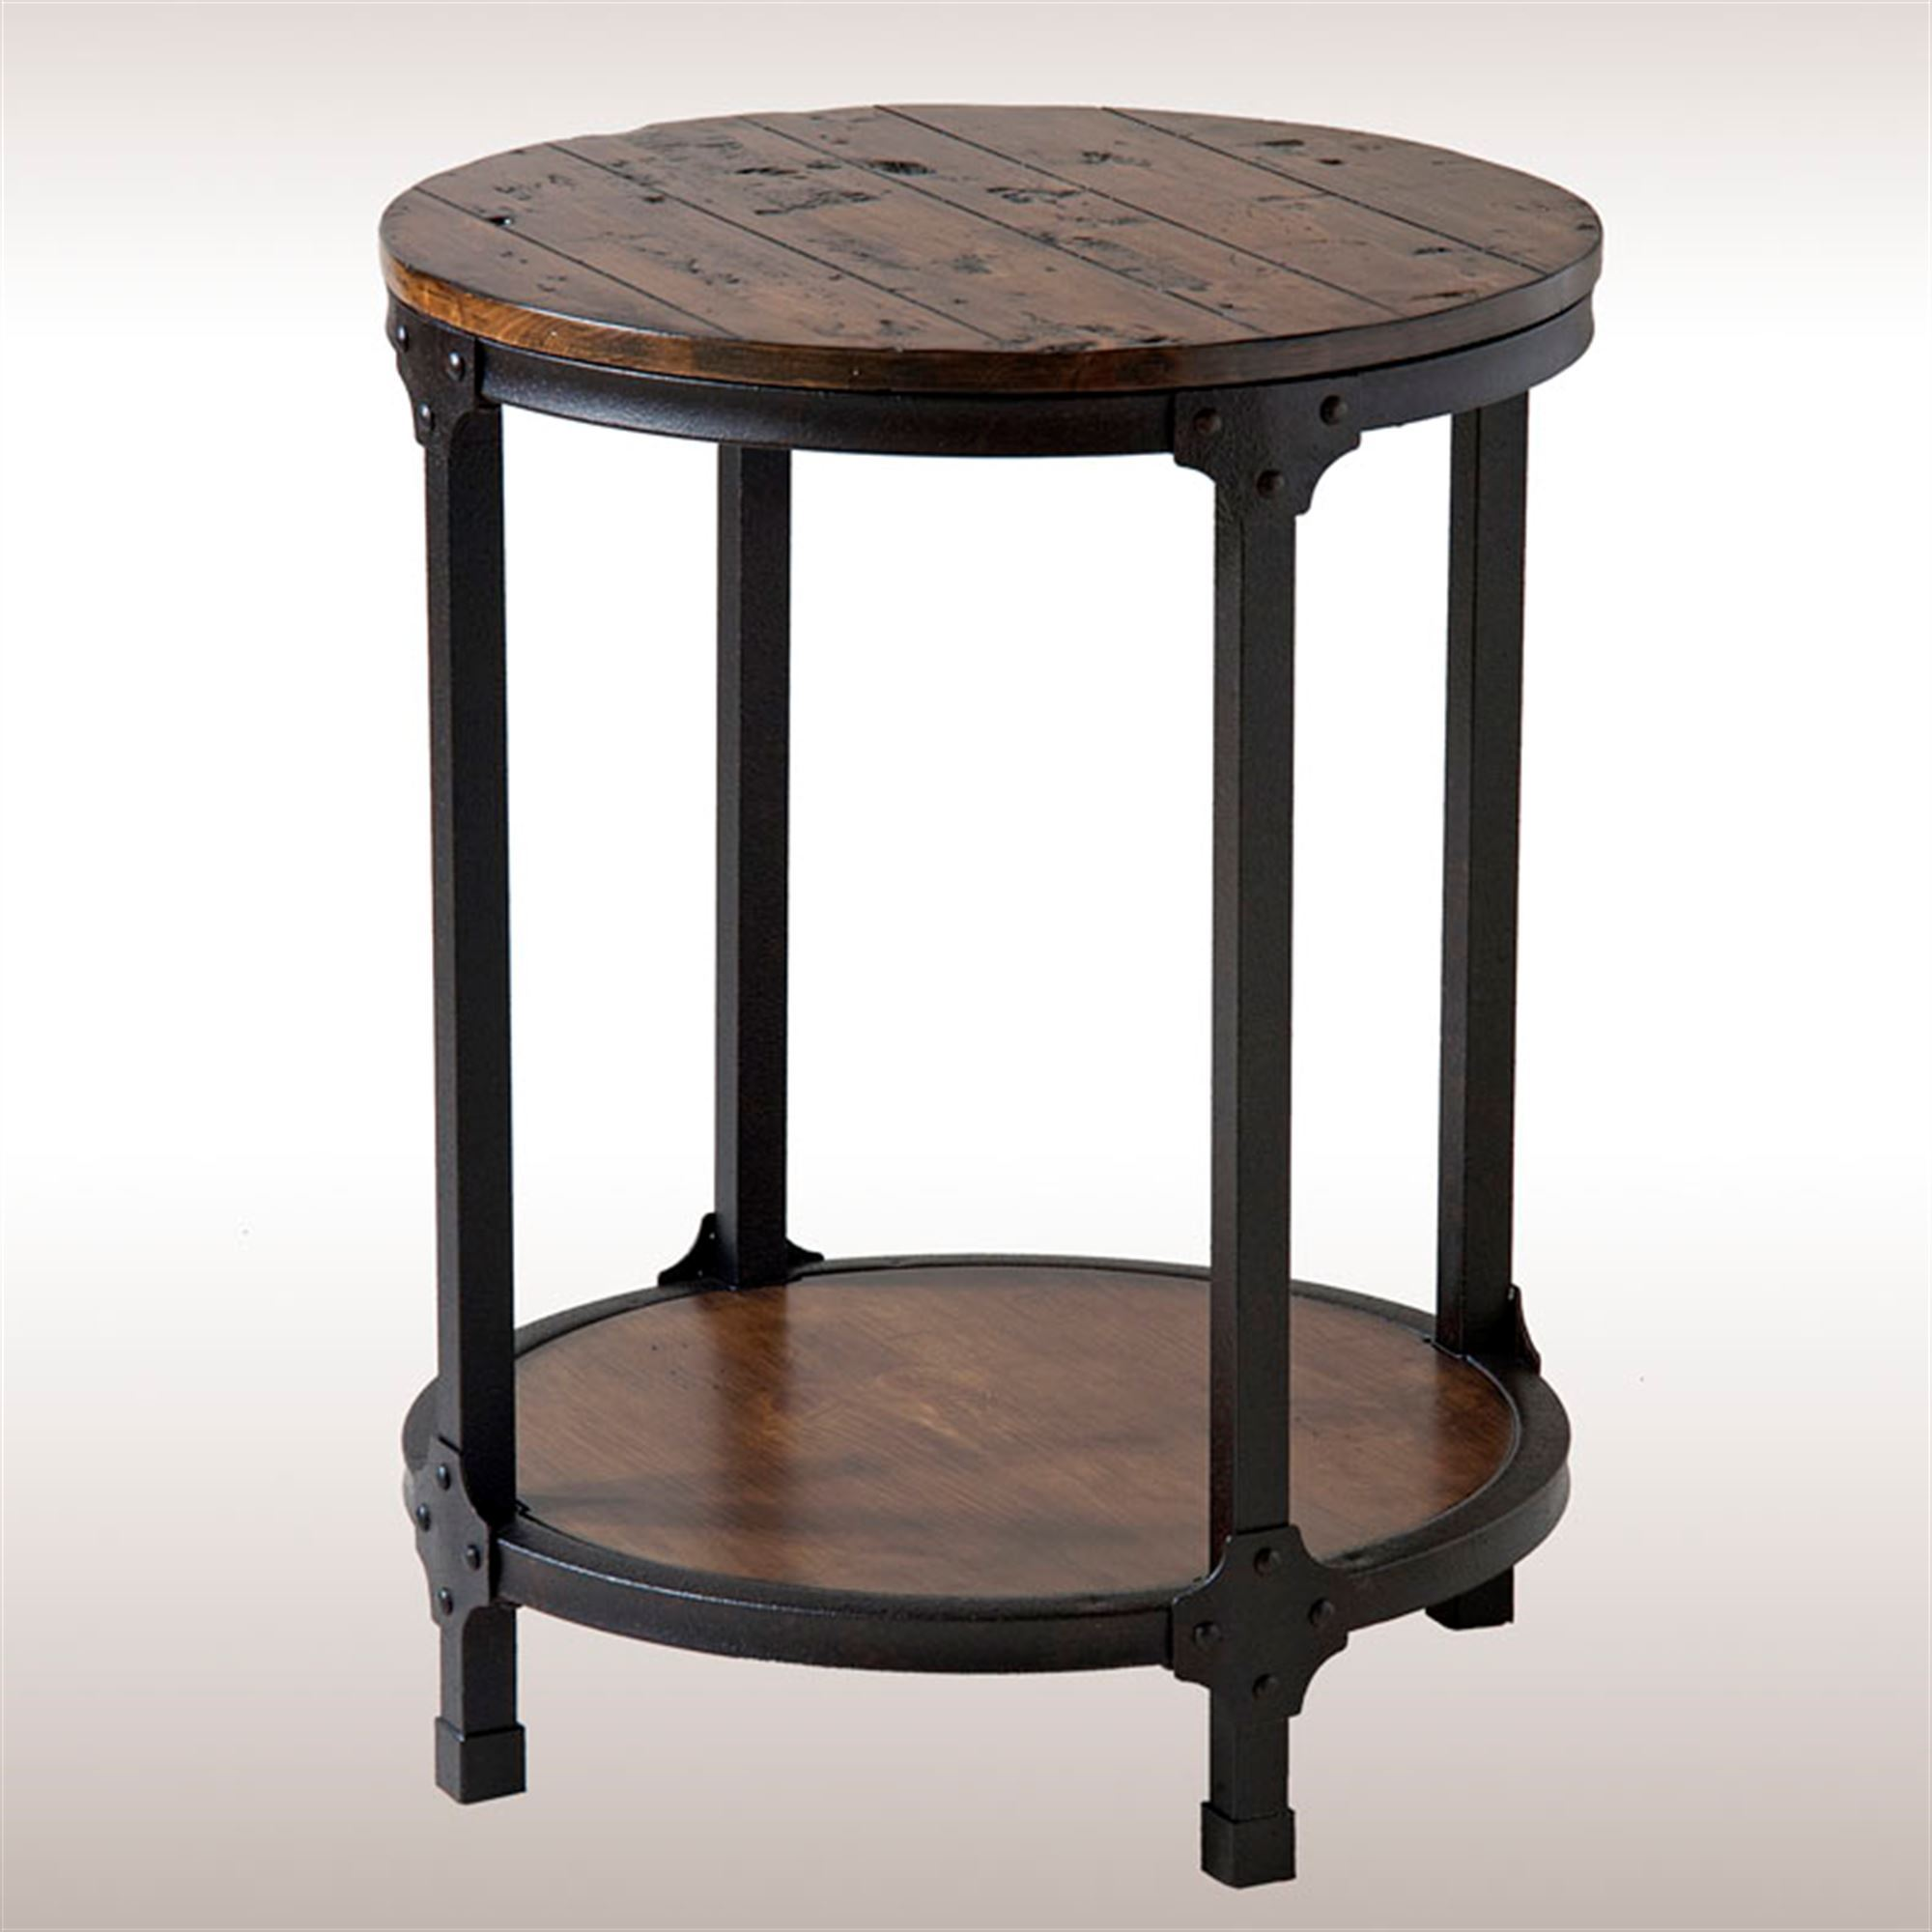 macon rustic round accent table brown aged touch zoom lamps plus lynnwood ashley bedroom furniture nesting tables bar style set corner nest wooden legs long decorative pearl drum